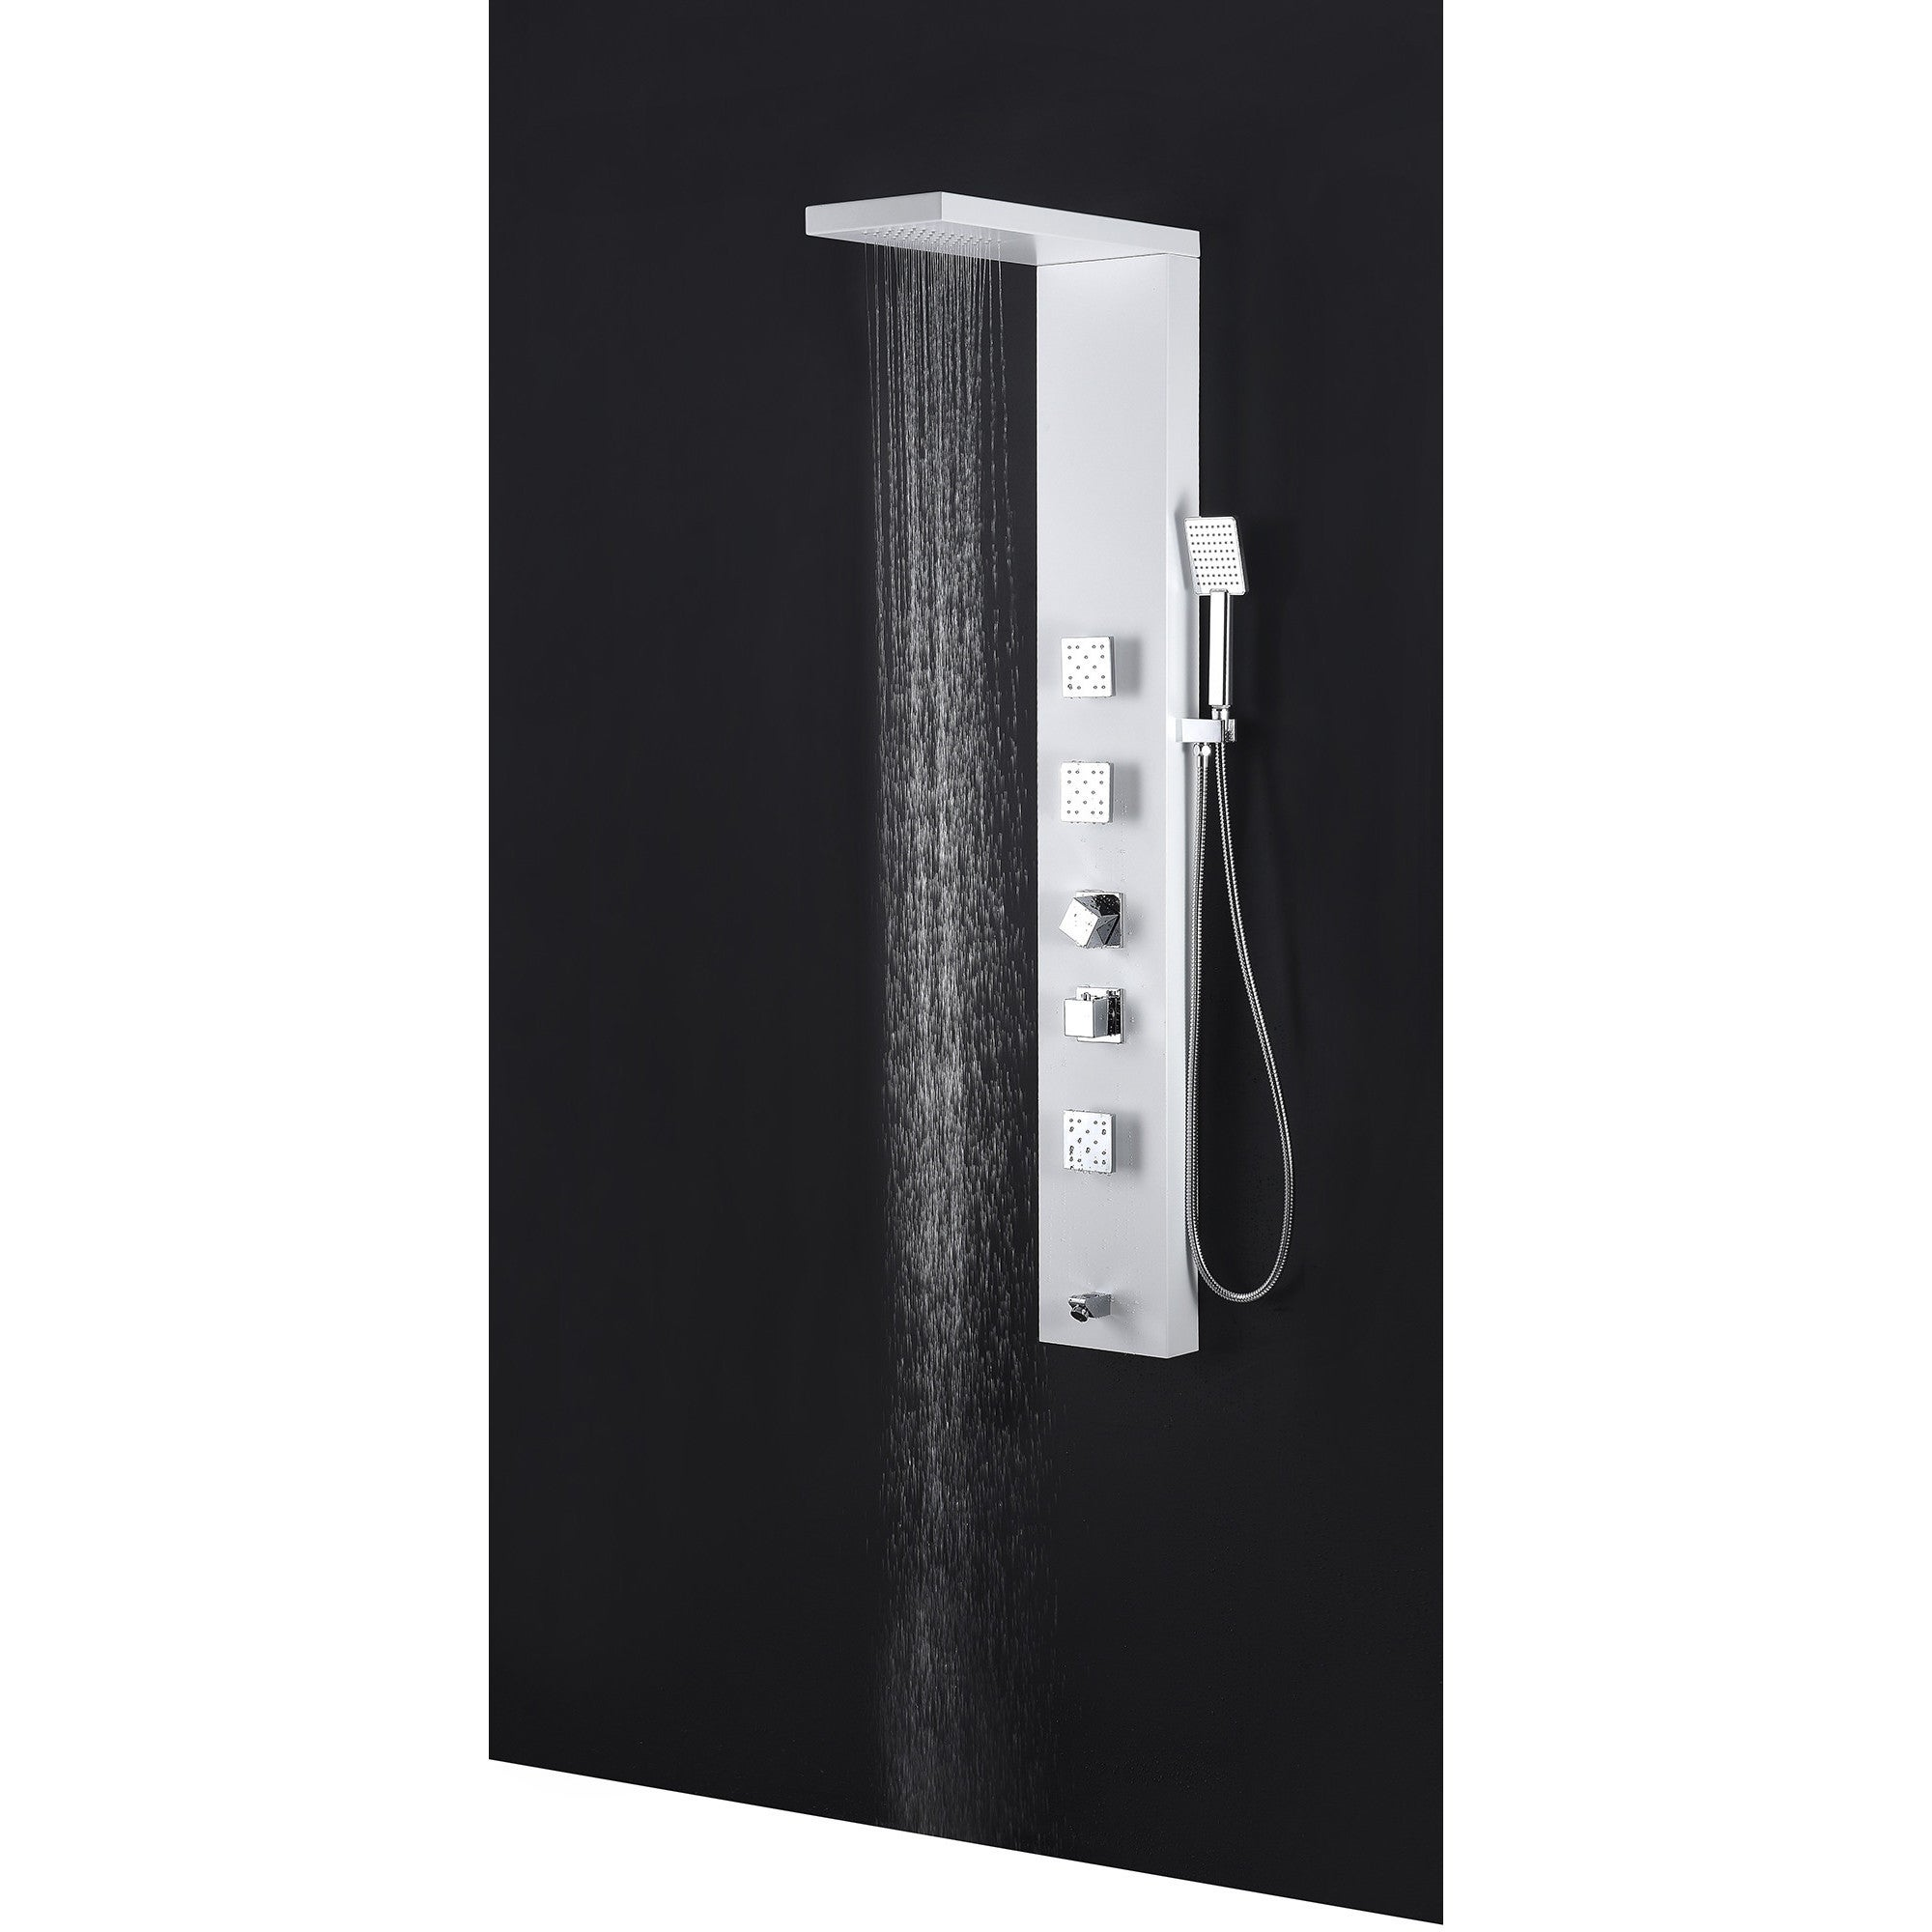 Shop Delta Series 56 In Full Body Shower Panel System With Heavy Of Electrical Panels Understanding The Relationship Star Rain And Spray Wand White Free Shipping Today 14506691